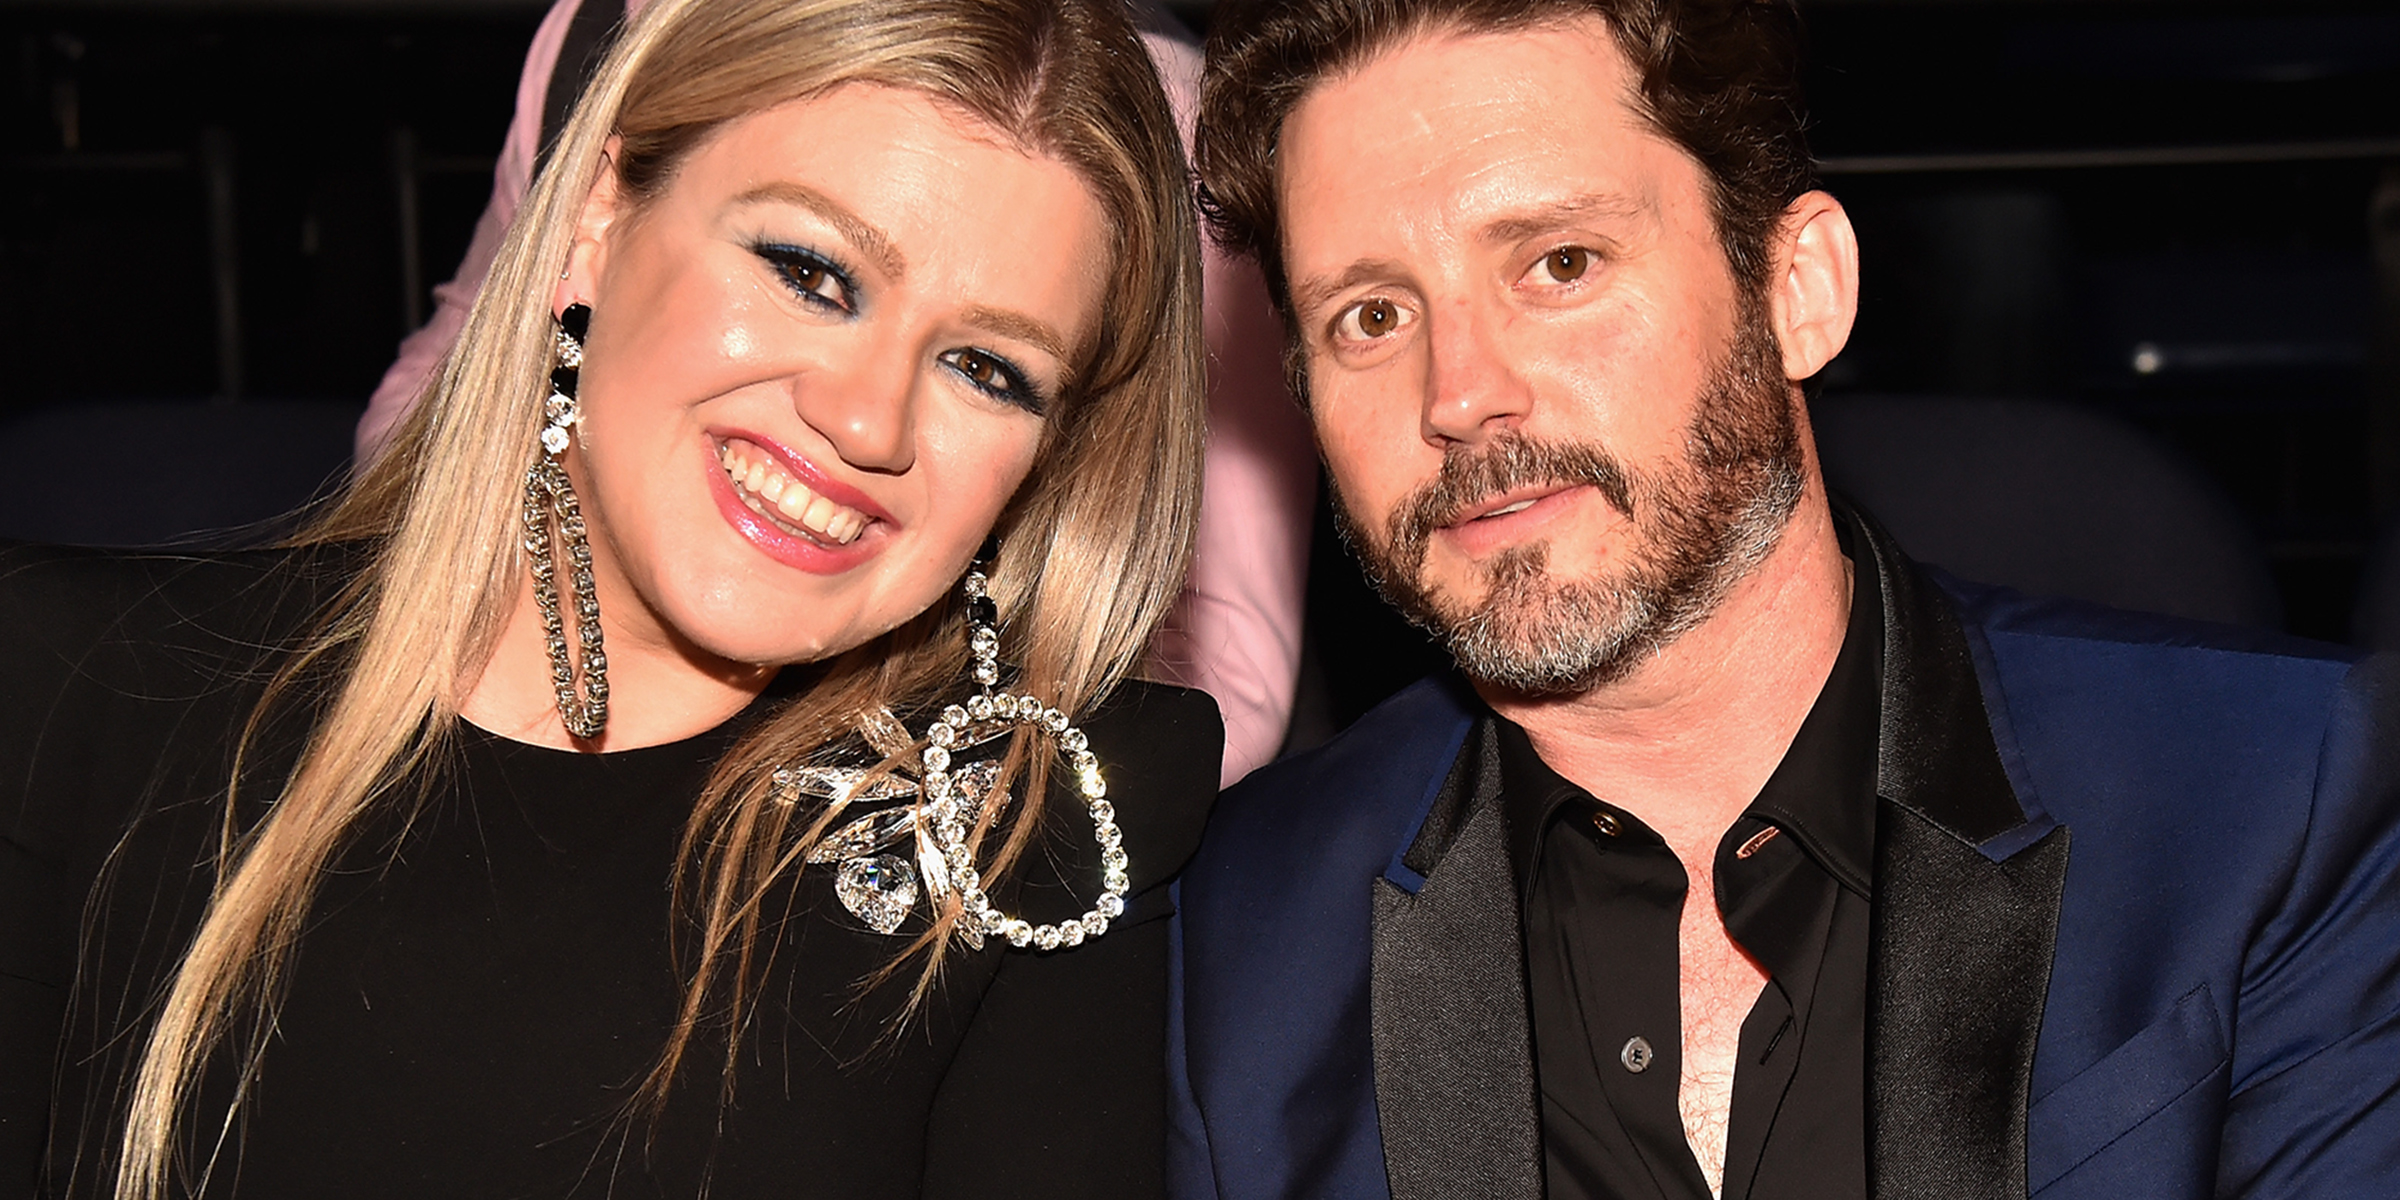 Kelly Clarkson opens up about working with her hubby